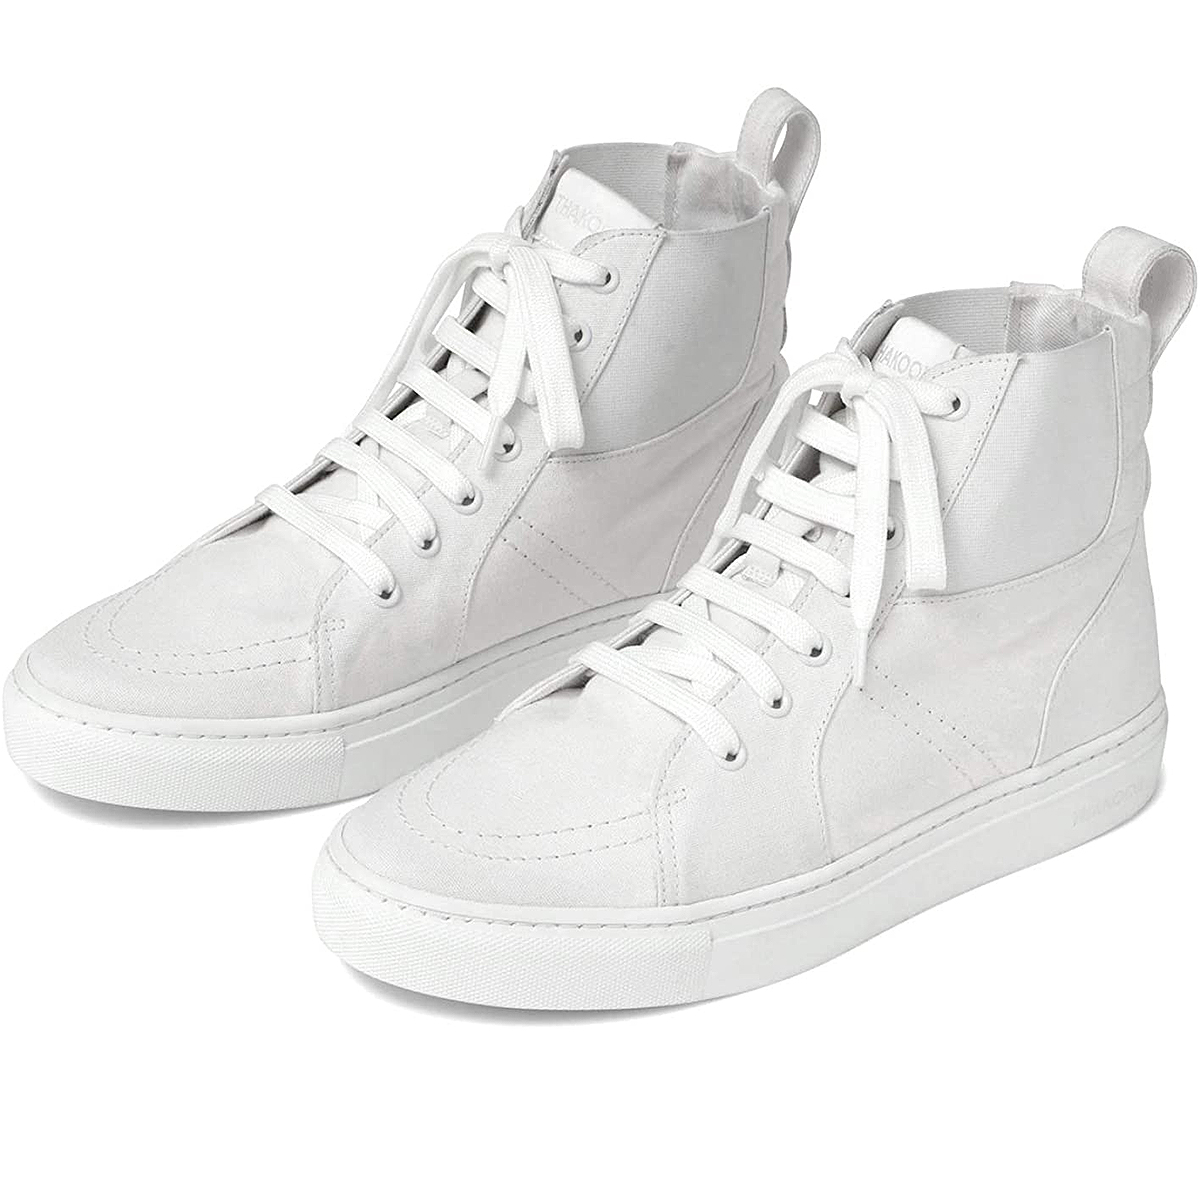 thakoon-high-top-sneakers